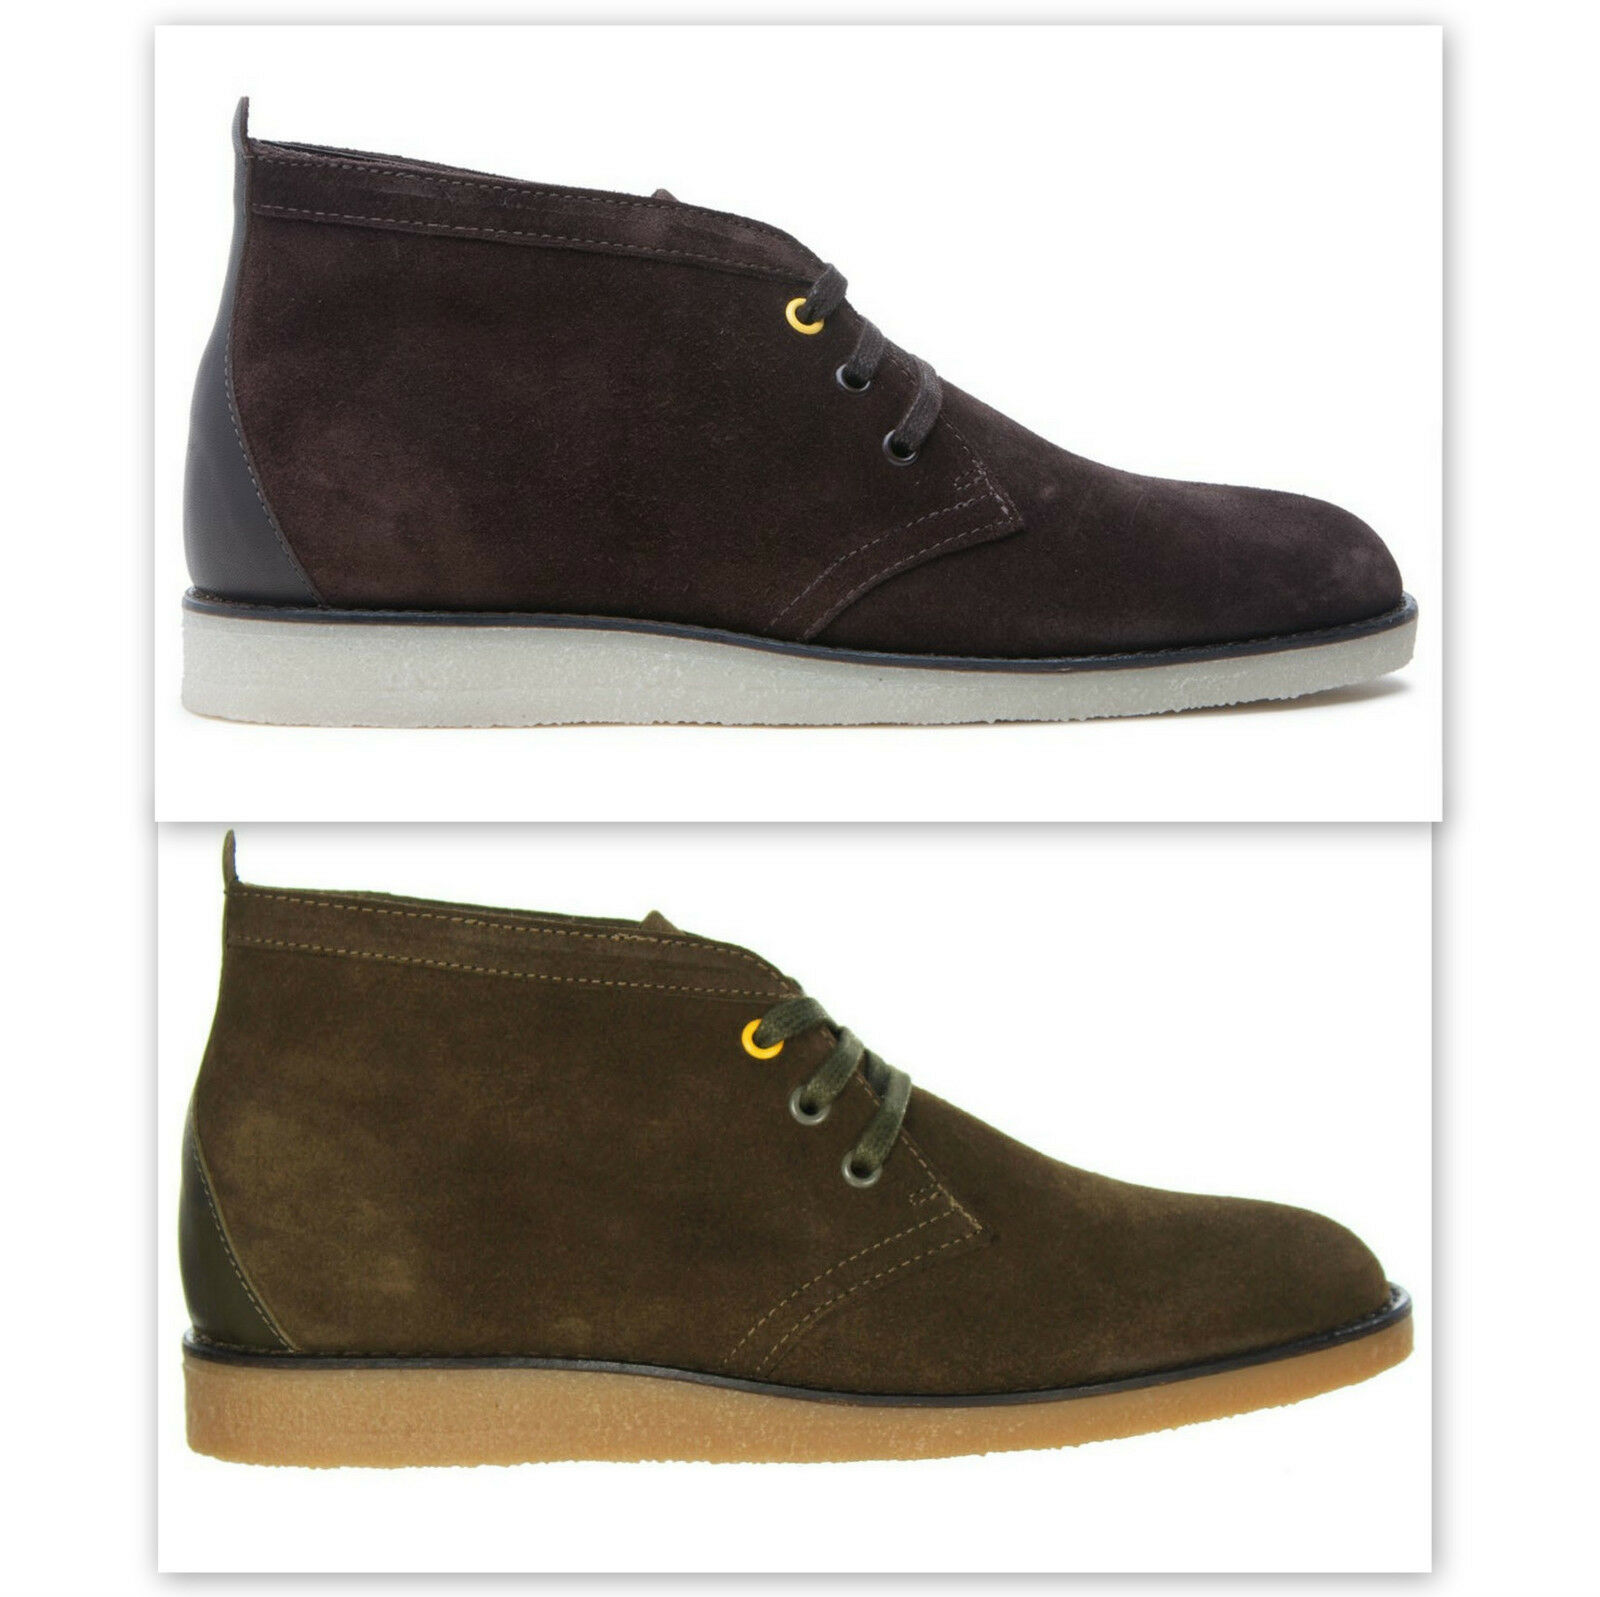 Schuhe WESC 40,43,45 lawrence mid top - ultimi numeri : 40,43,45 WESC 40af1f